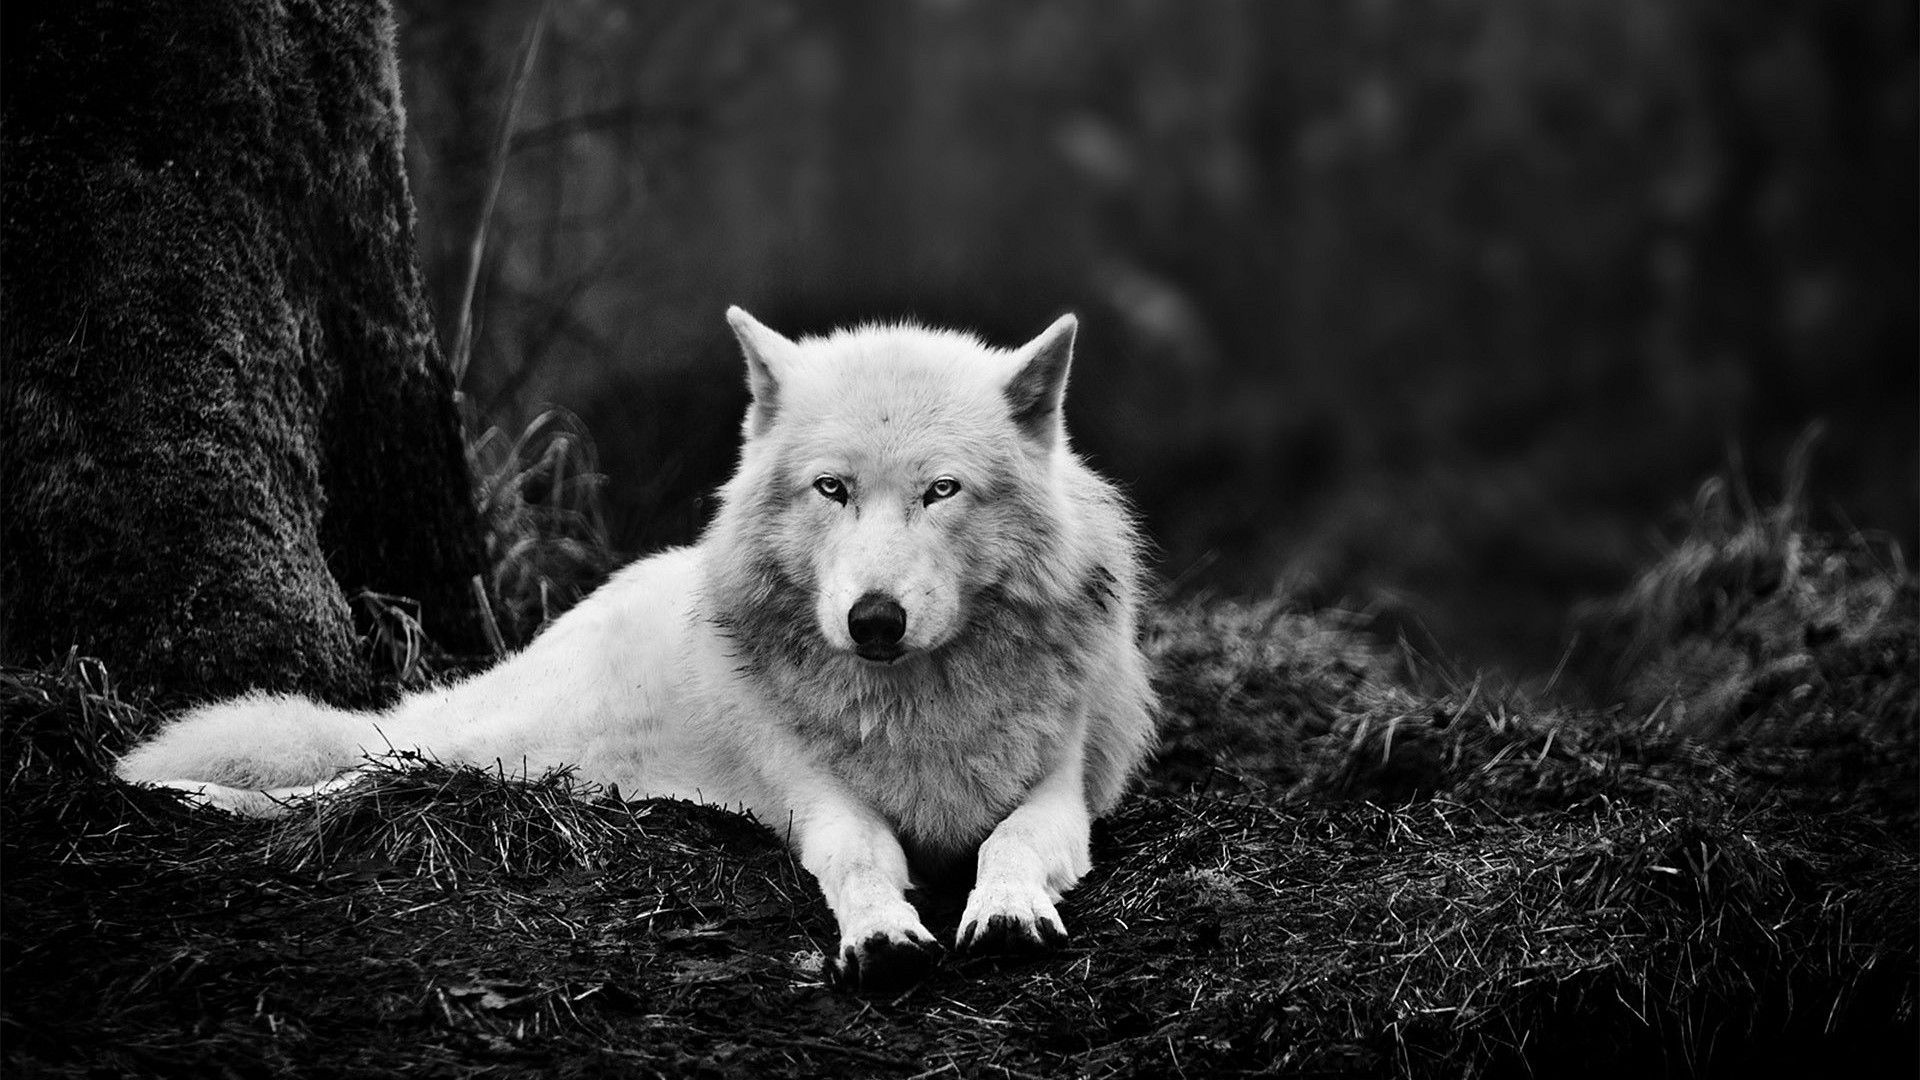 Live Wallpaper Hd In 2020 Wolf Wallpaper Wolf Black And White Black Wolf